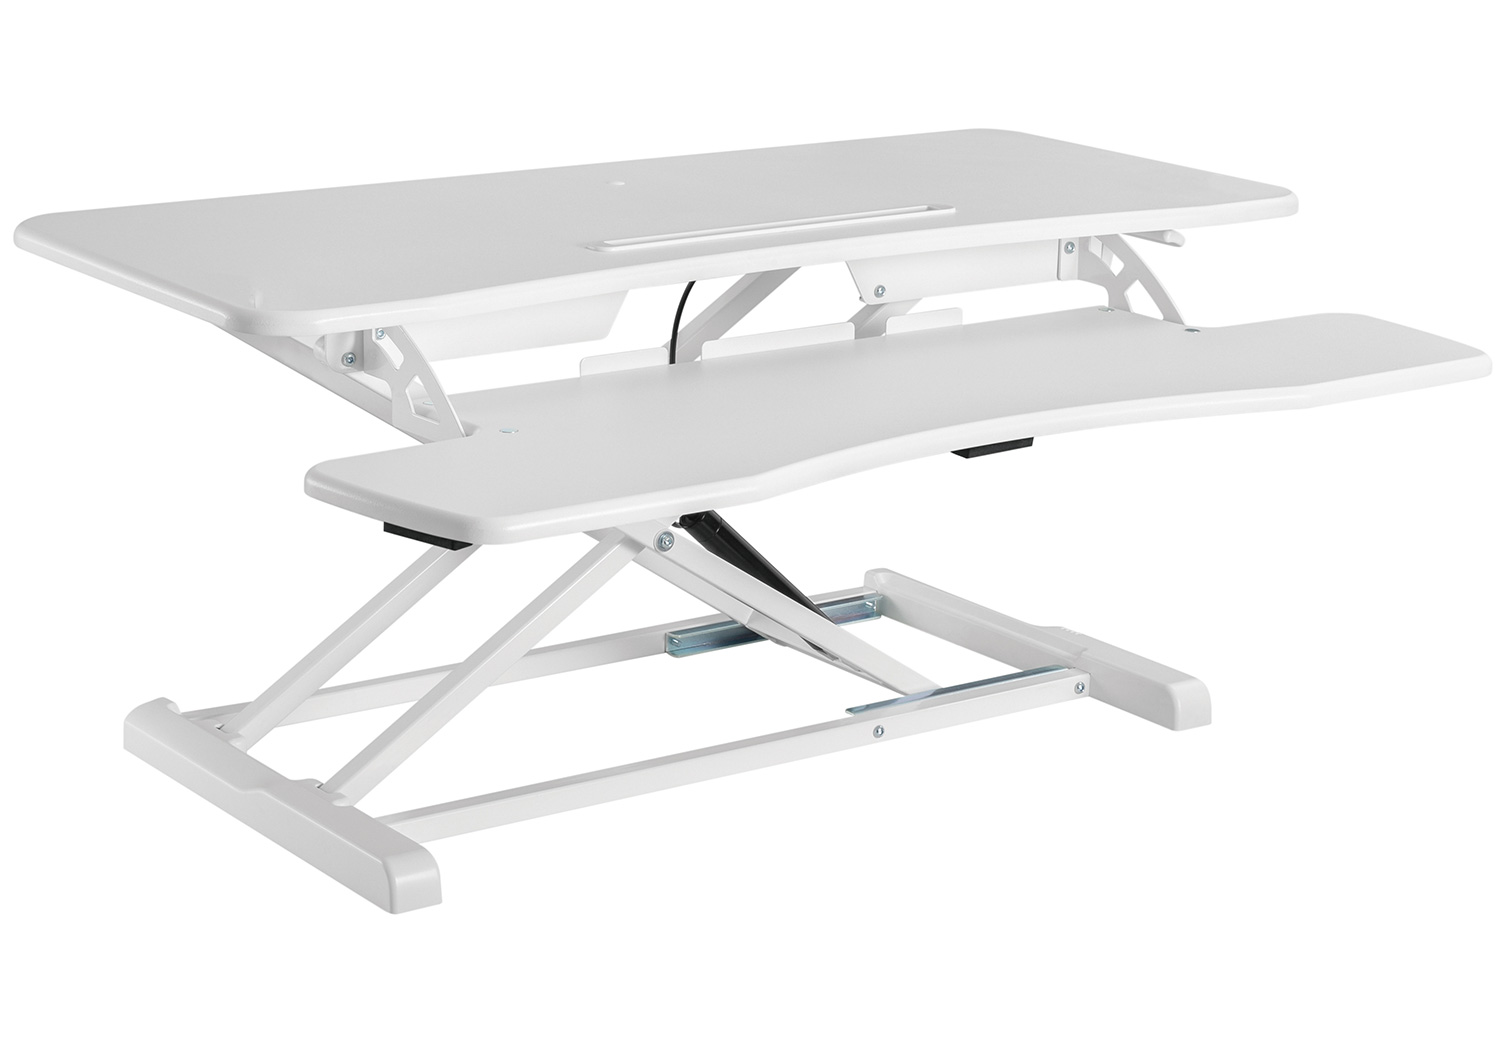 GSS061AW Sit-stand desk converter standing workstation gas spring height adjustable white